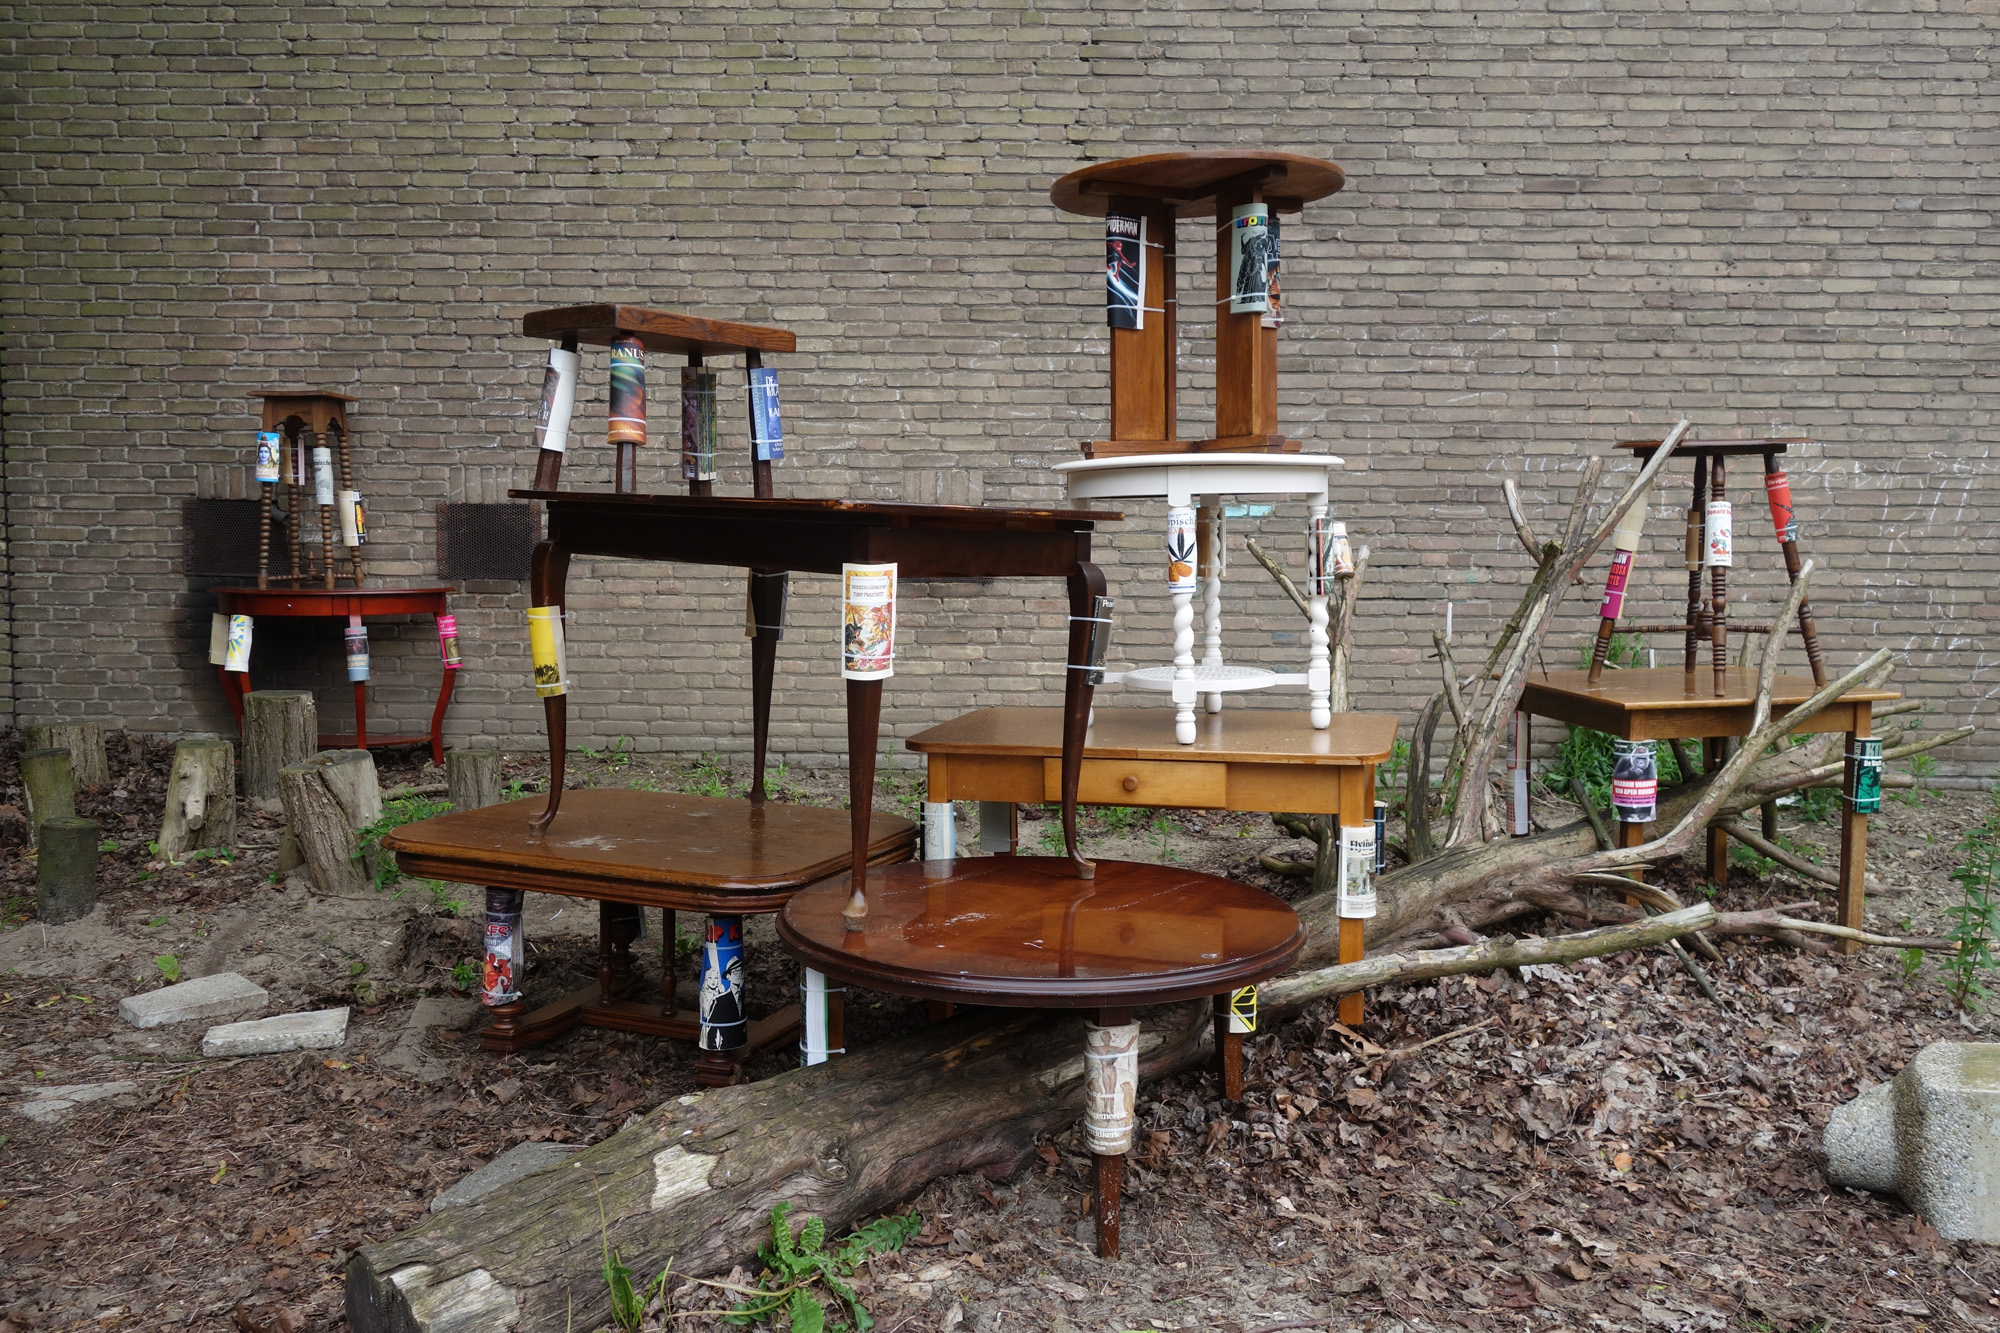 Mark-Salvatus-Claws-2016-Wooden-tables-books-catnip-Dimensions-variable